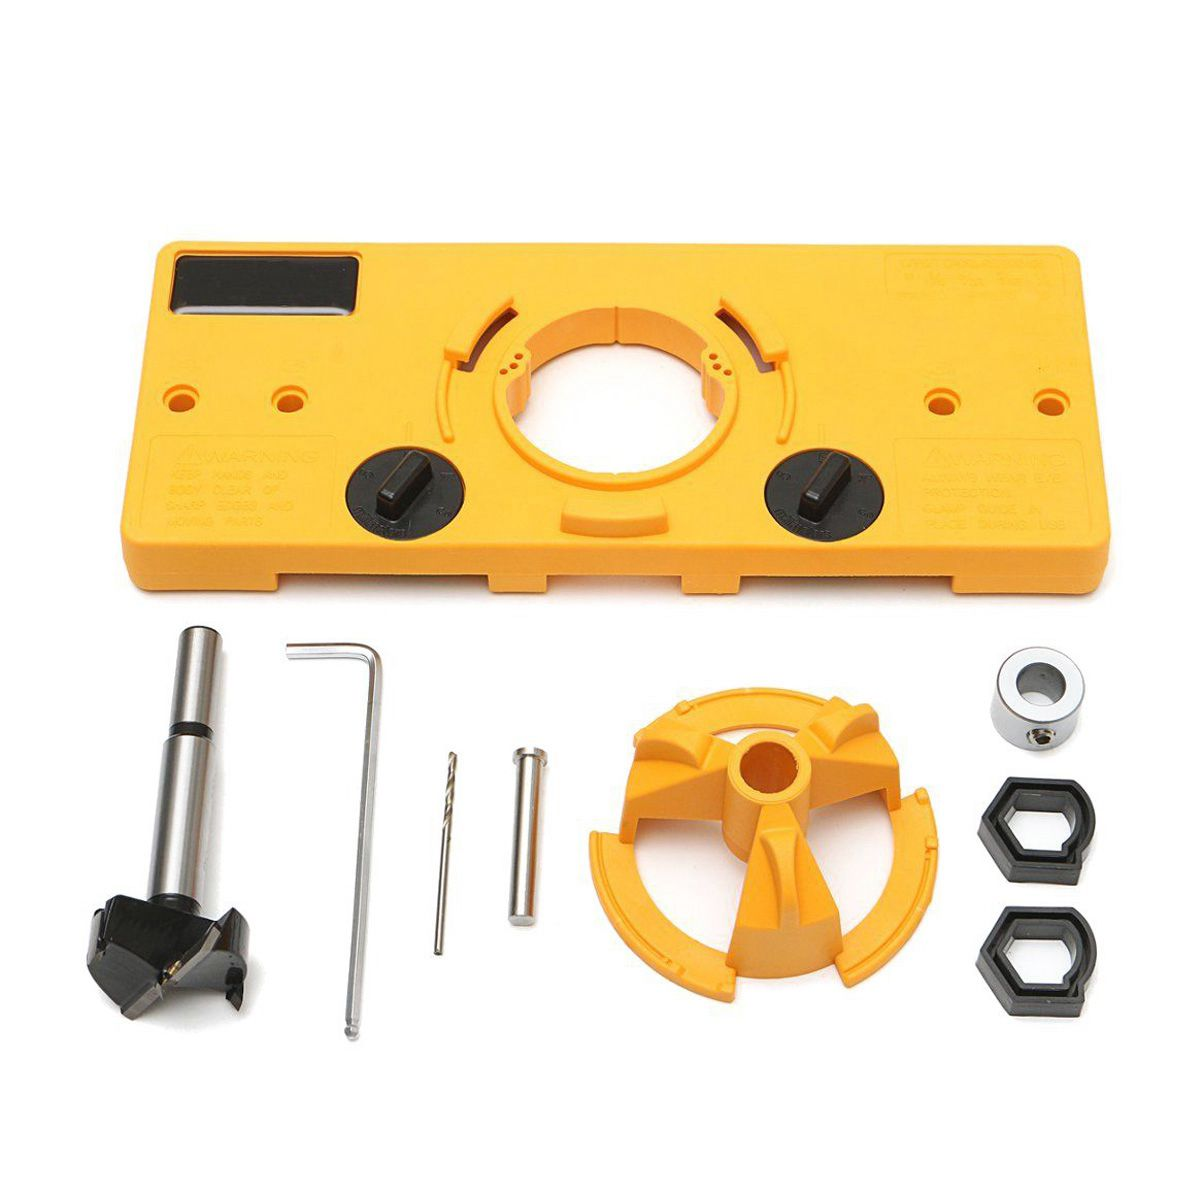 цена на 35MM Cup Style Hinge Boring Jig Drill Guide Set Door Hole Template For wood Hole Locator Kreg Tool Hinge Jig Drill Guide Tool